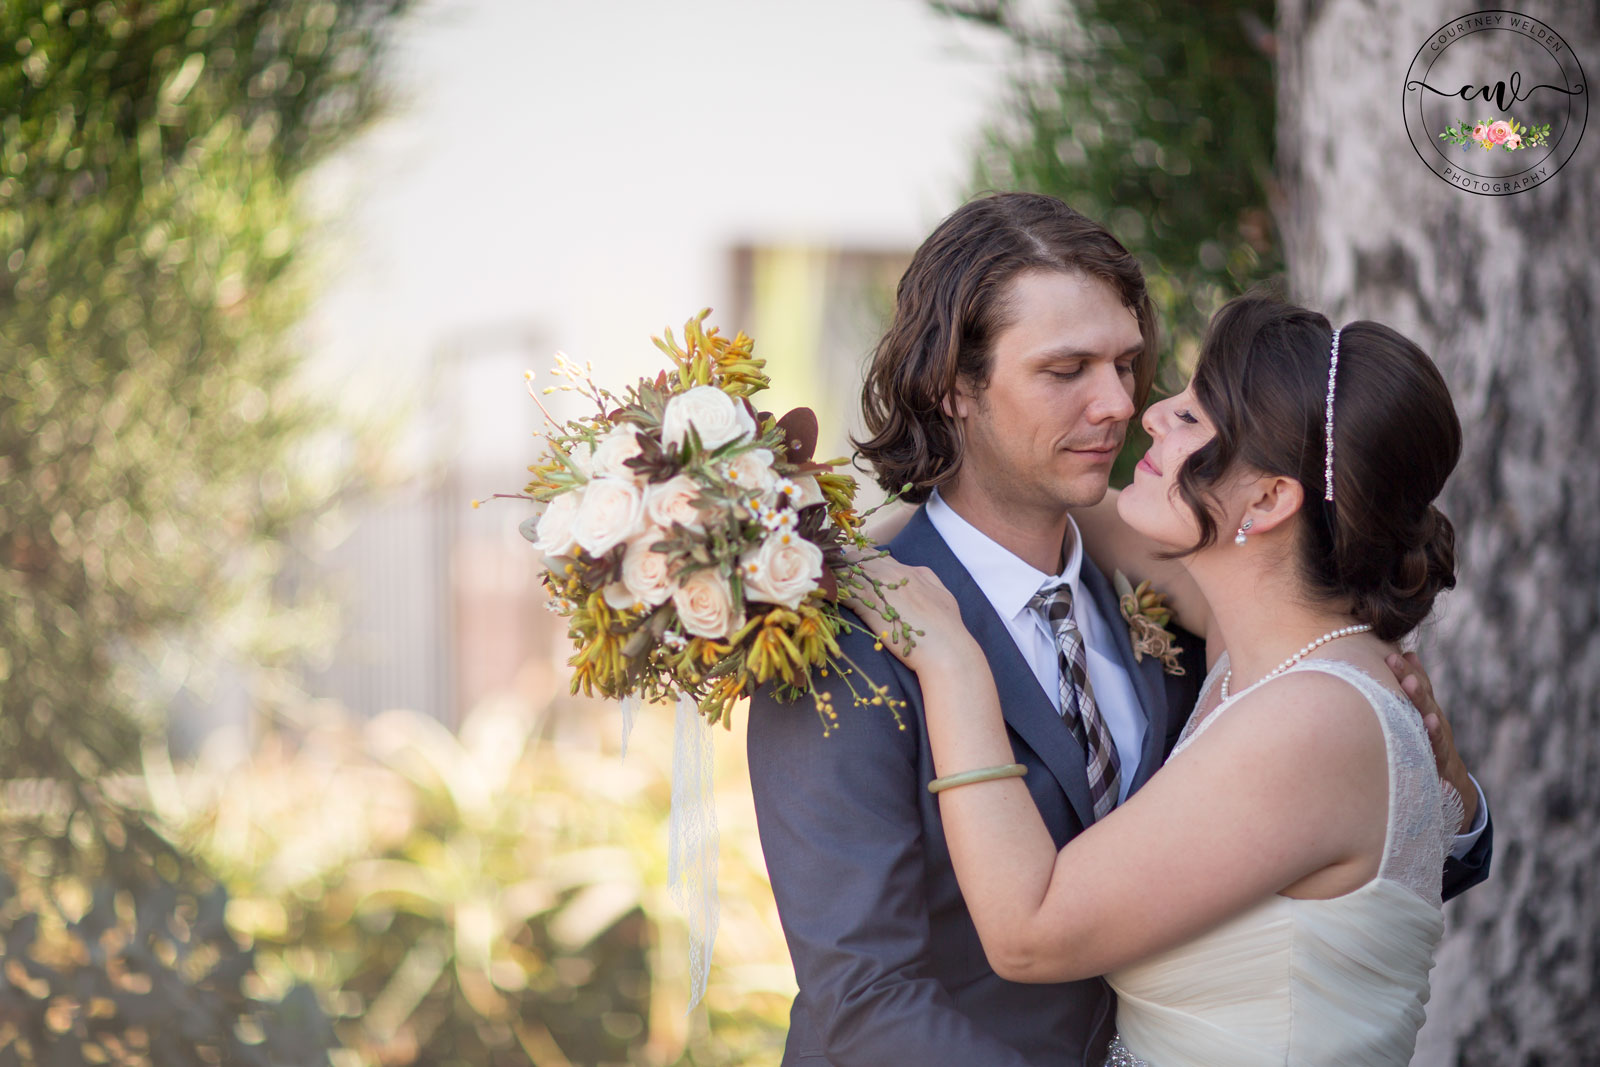 In Leu Of A First Dance These Two Performed Rock Song After For Their Adoring Guests This Urban San Diego Wedding Was An Absolute Dream